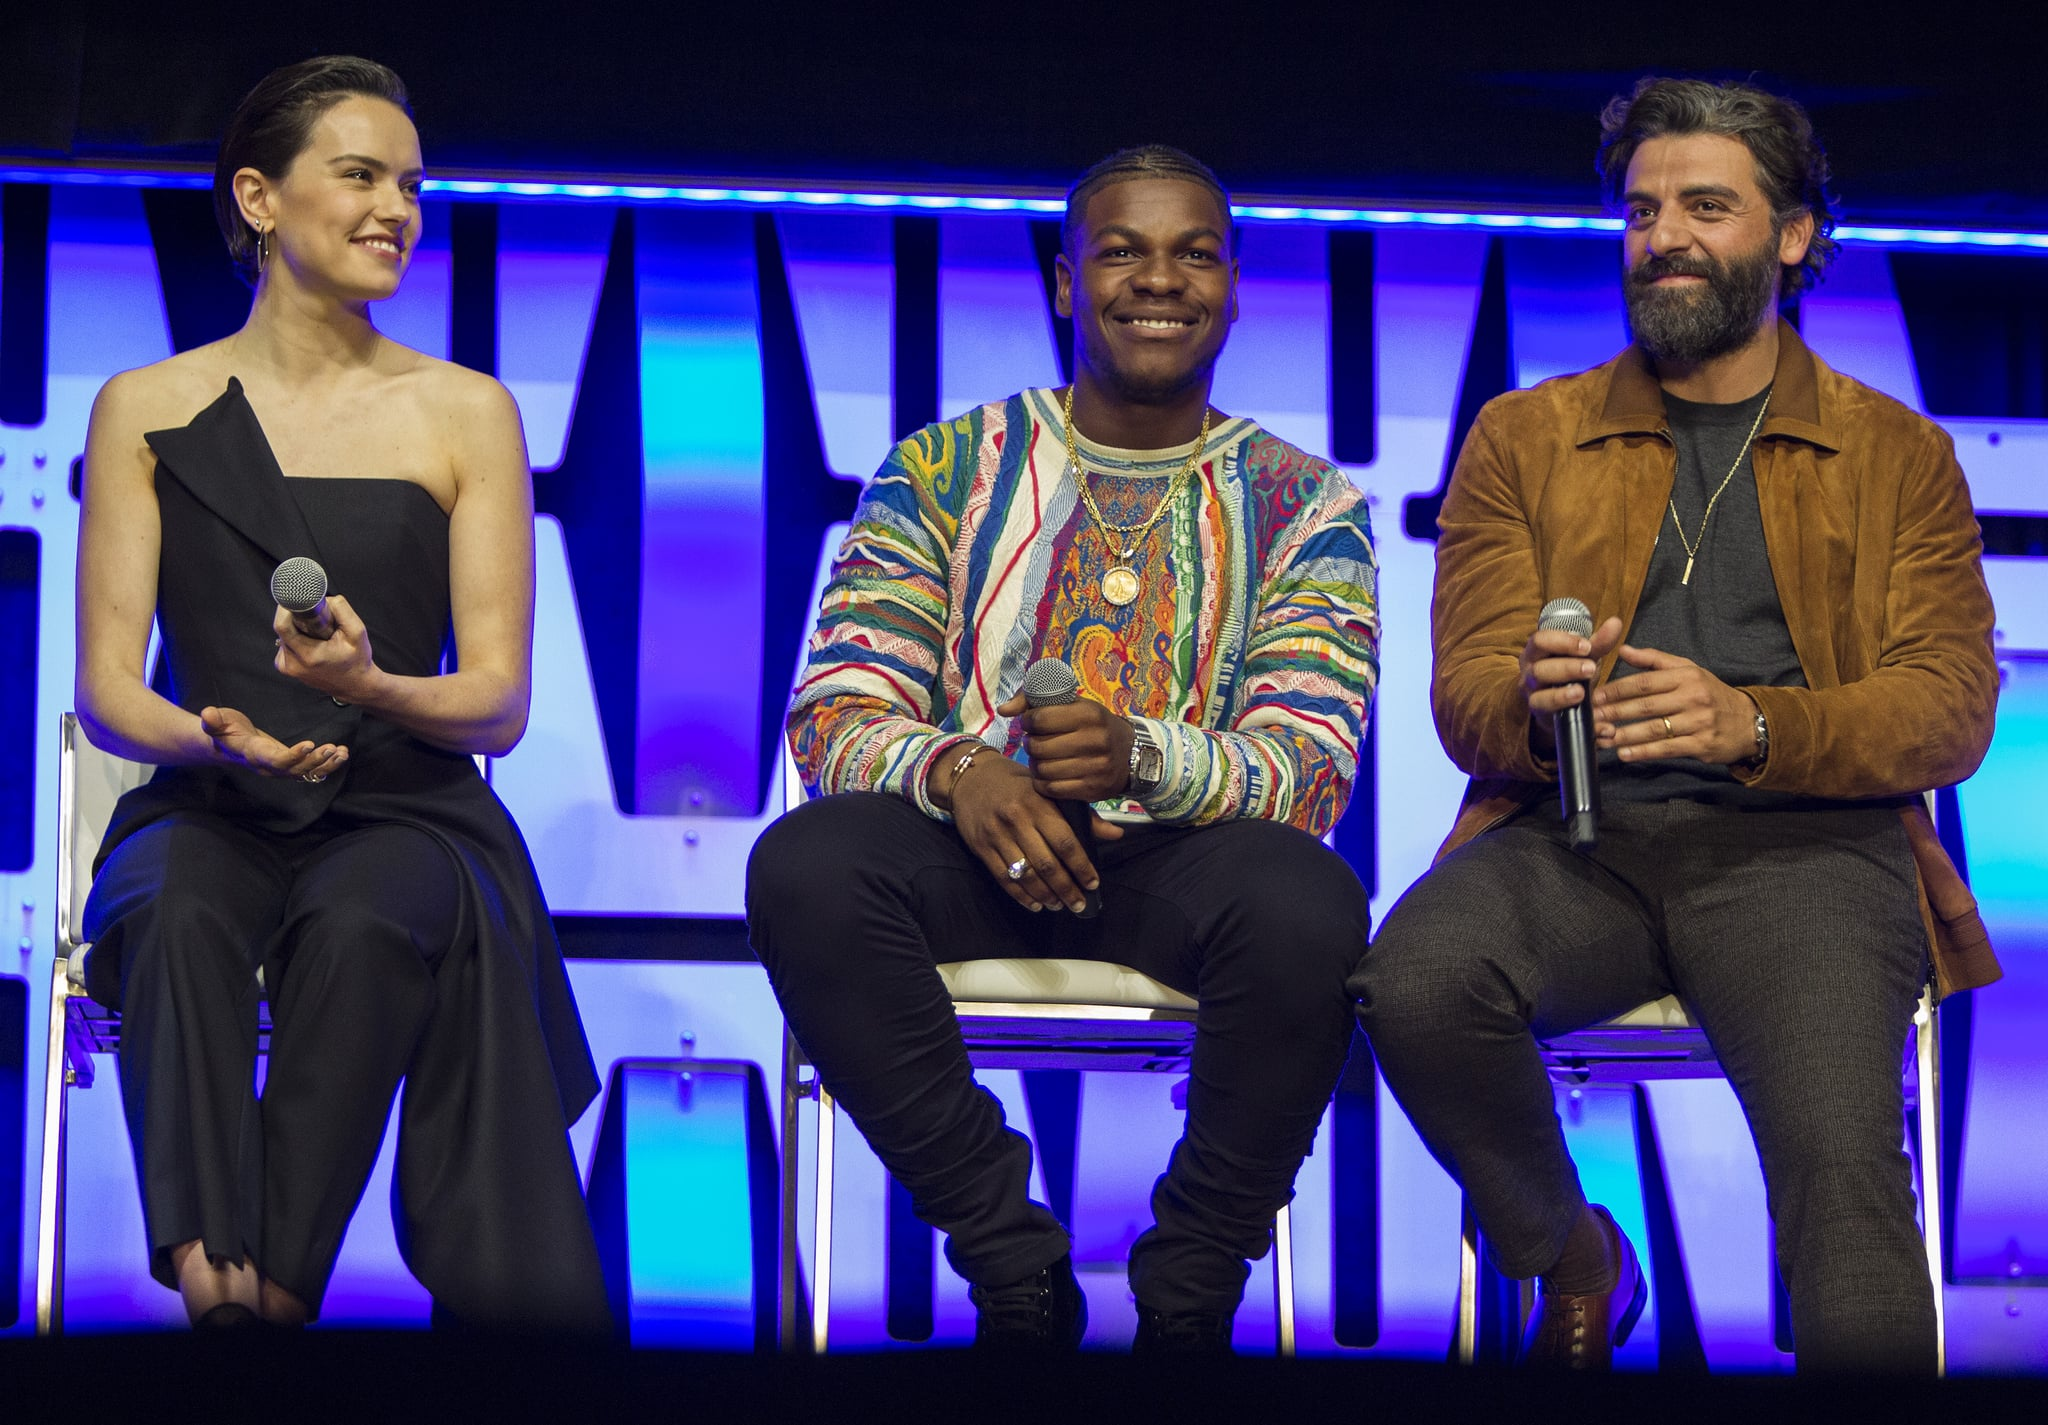 CHICAGO, IL - APRIL 12:  Daisy Ridley, John Boyega and Oscar Isaac during the Star Wars Celebration at the Wintrust Arena on April 12, 2019 in Chicago, Illinois.  (Photo by Barry Brecheisen/Getty Images)